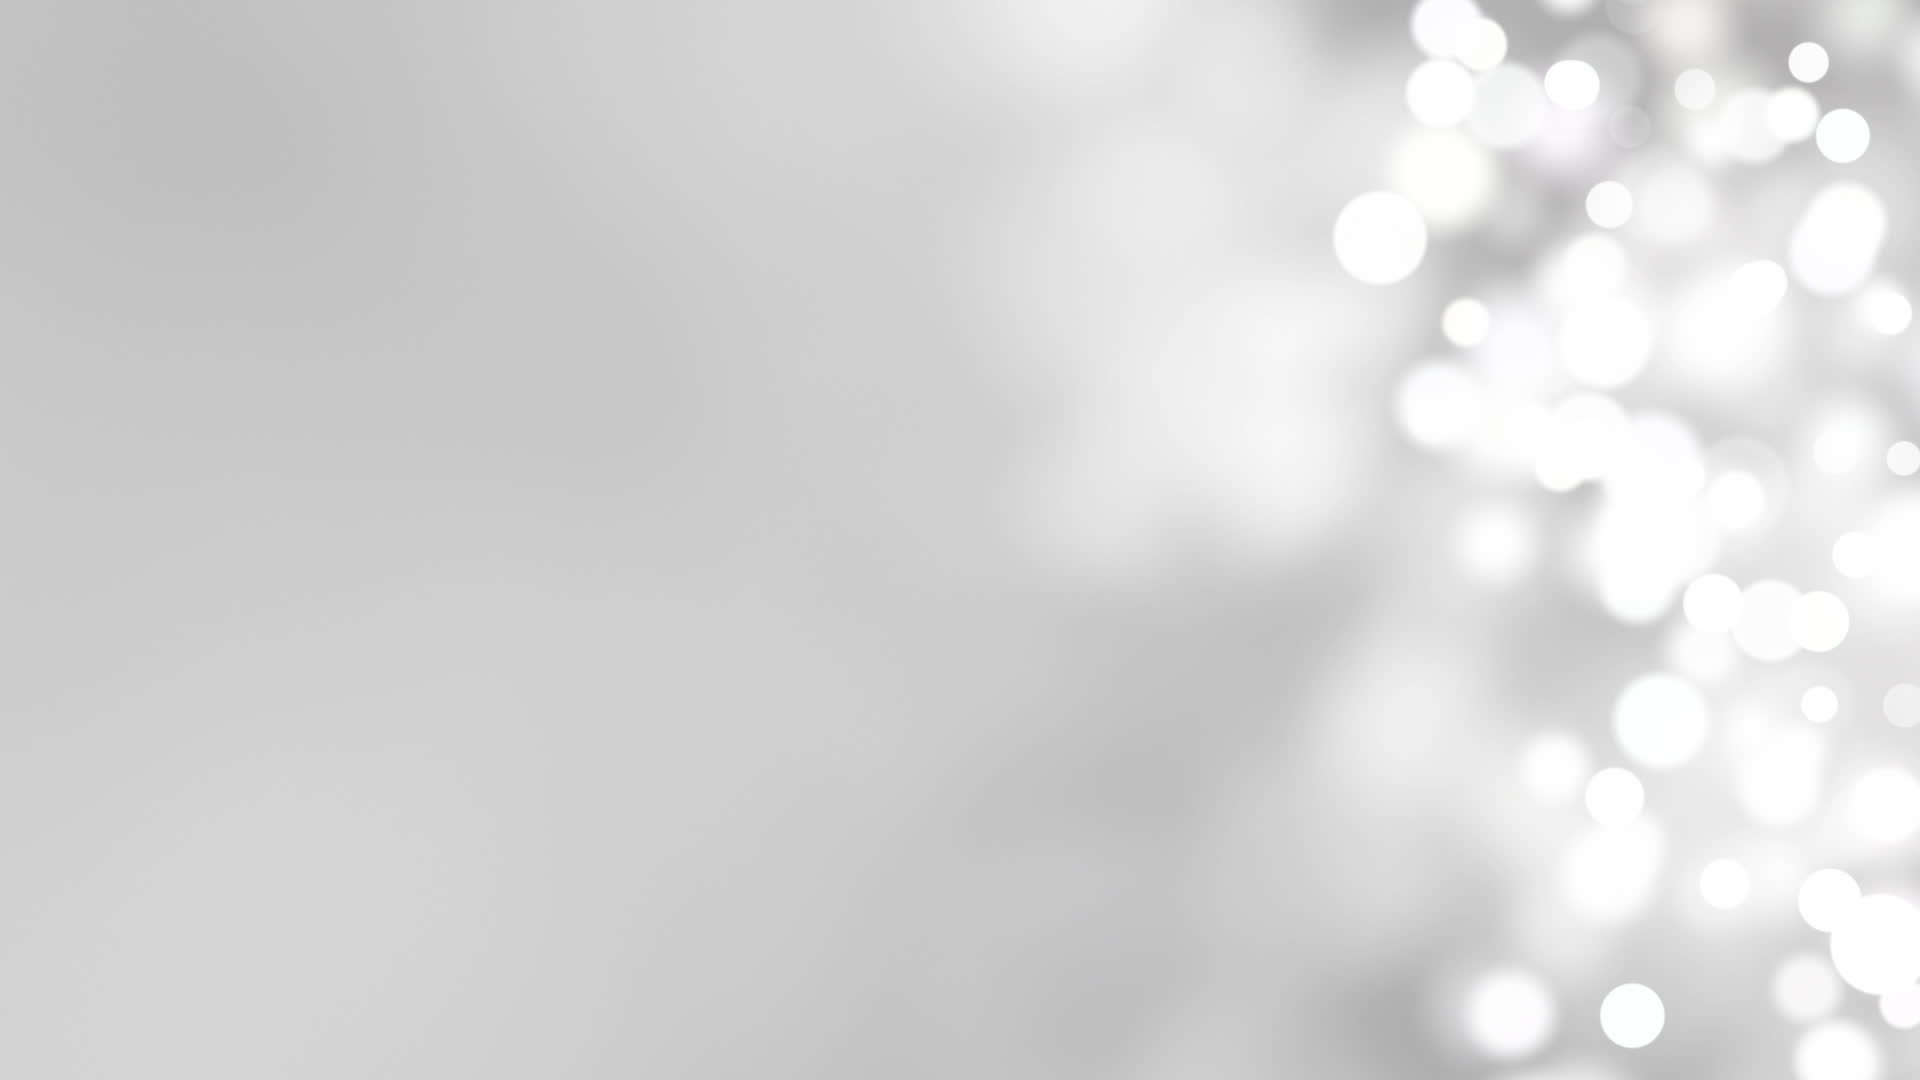 Black and white abstract backgrounds 57 images - White background 1920x1080 ...